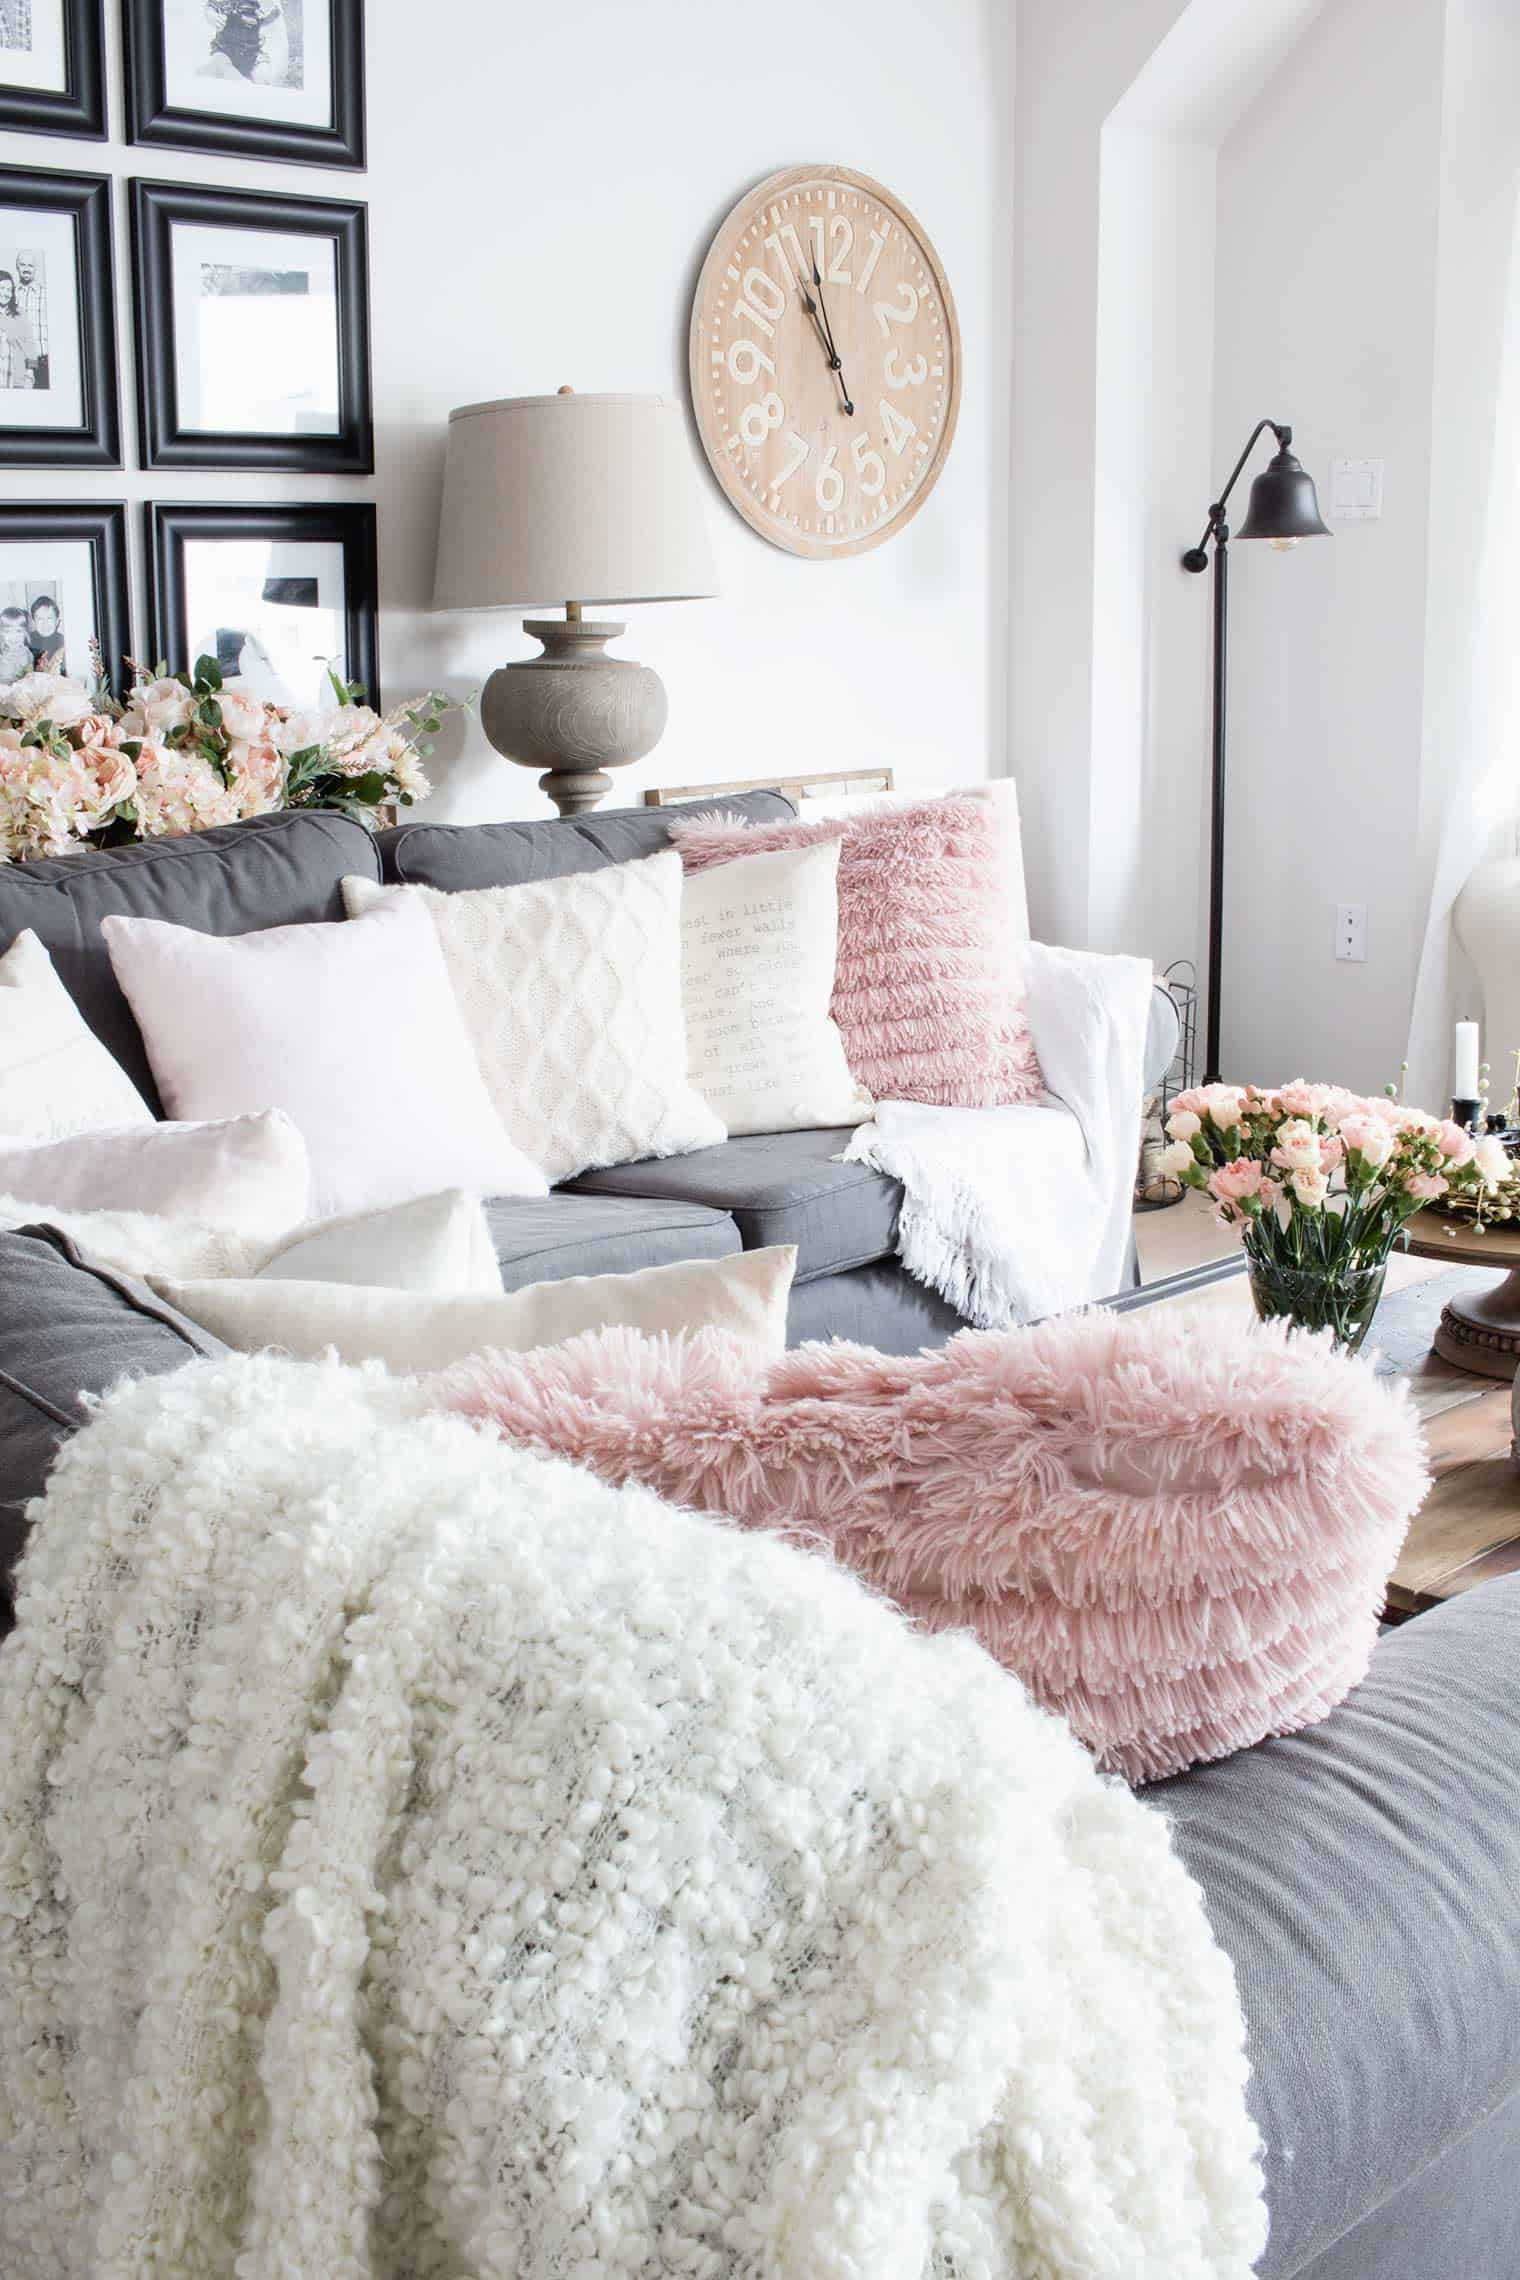 blush and cream throw pillow-filled grey sectional in living room